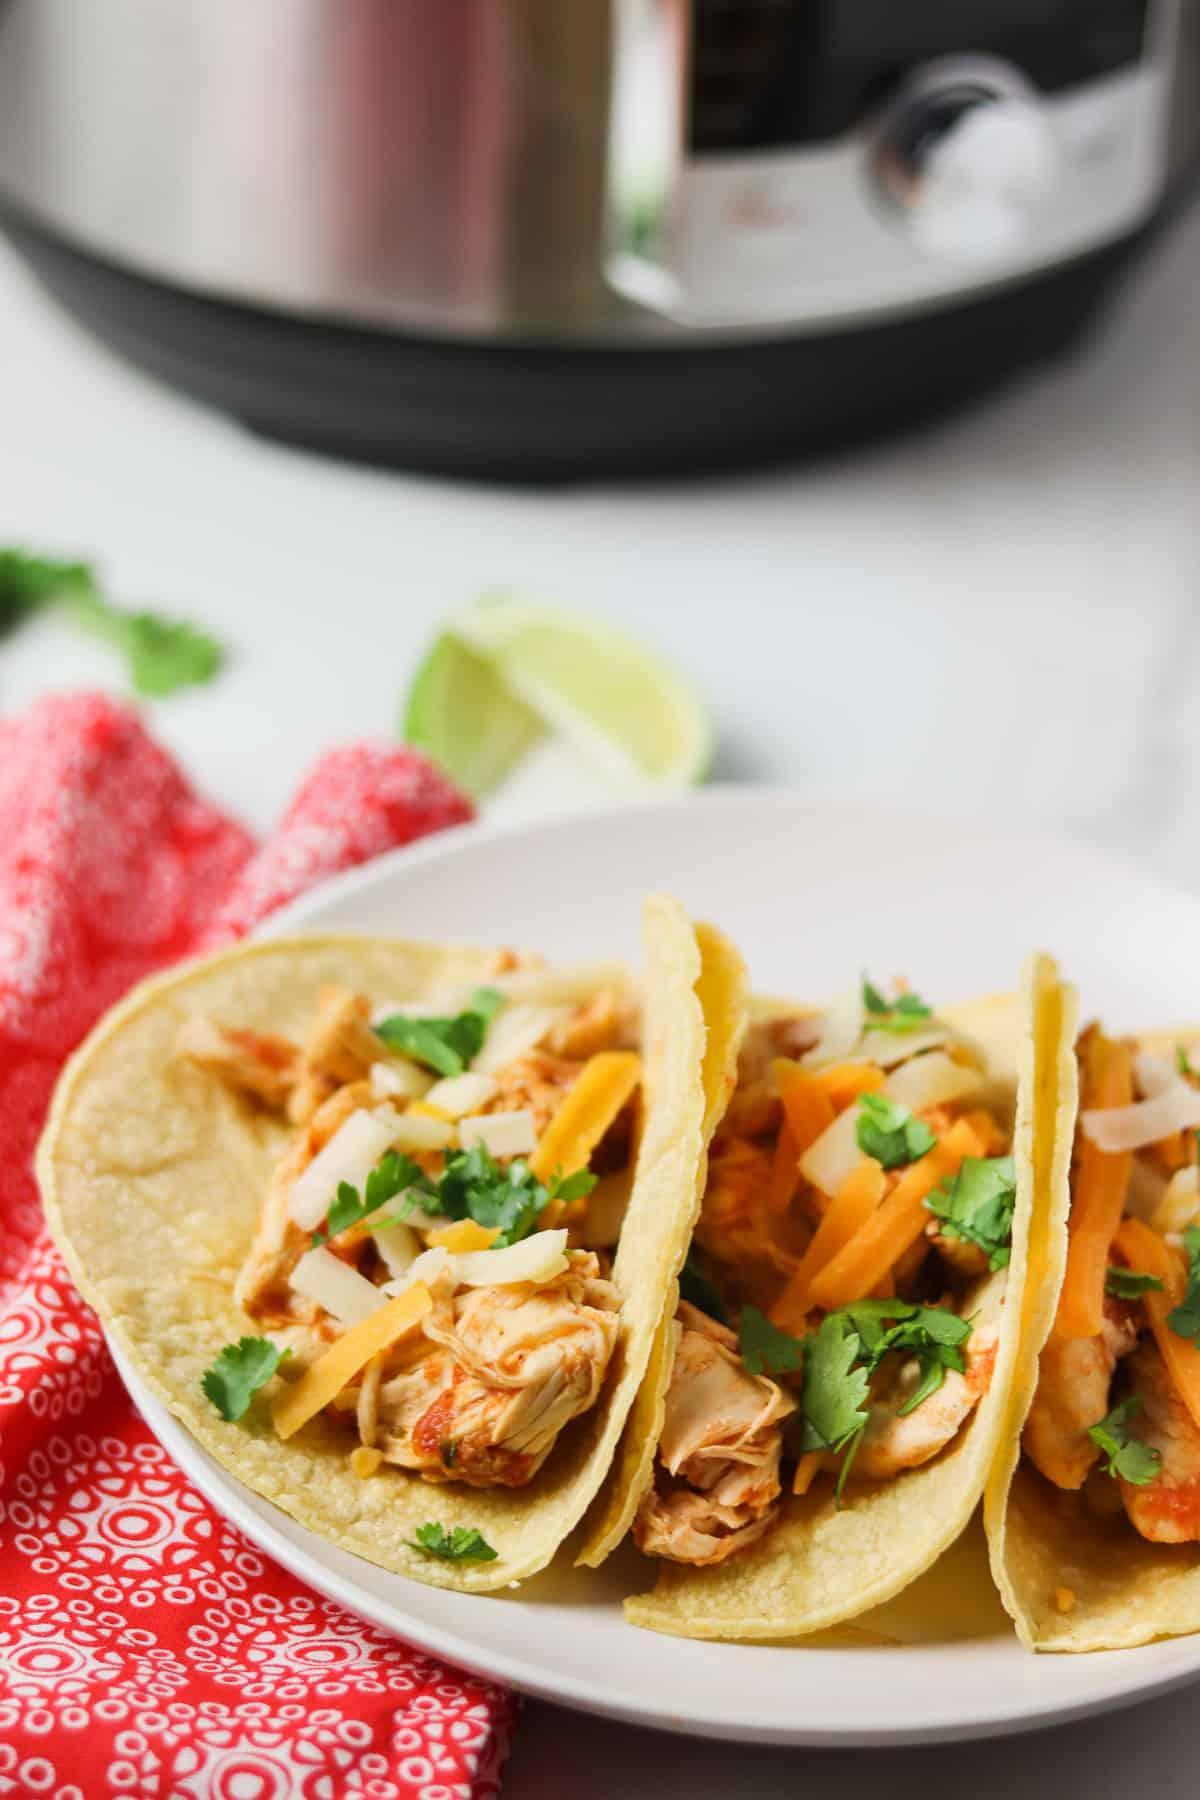 shredded chicken tacos on white plate with instant pot in the background